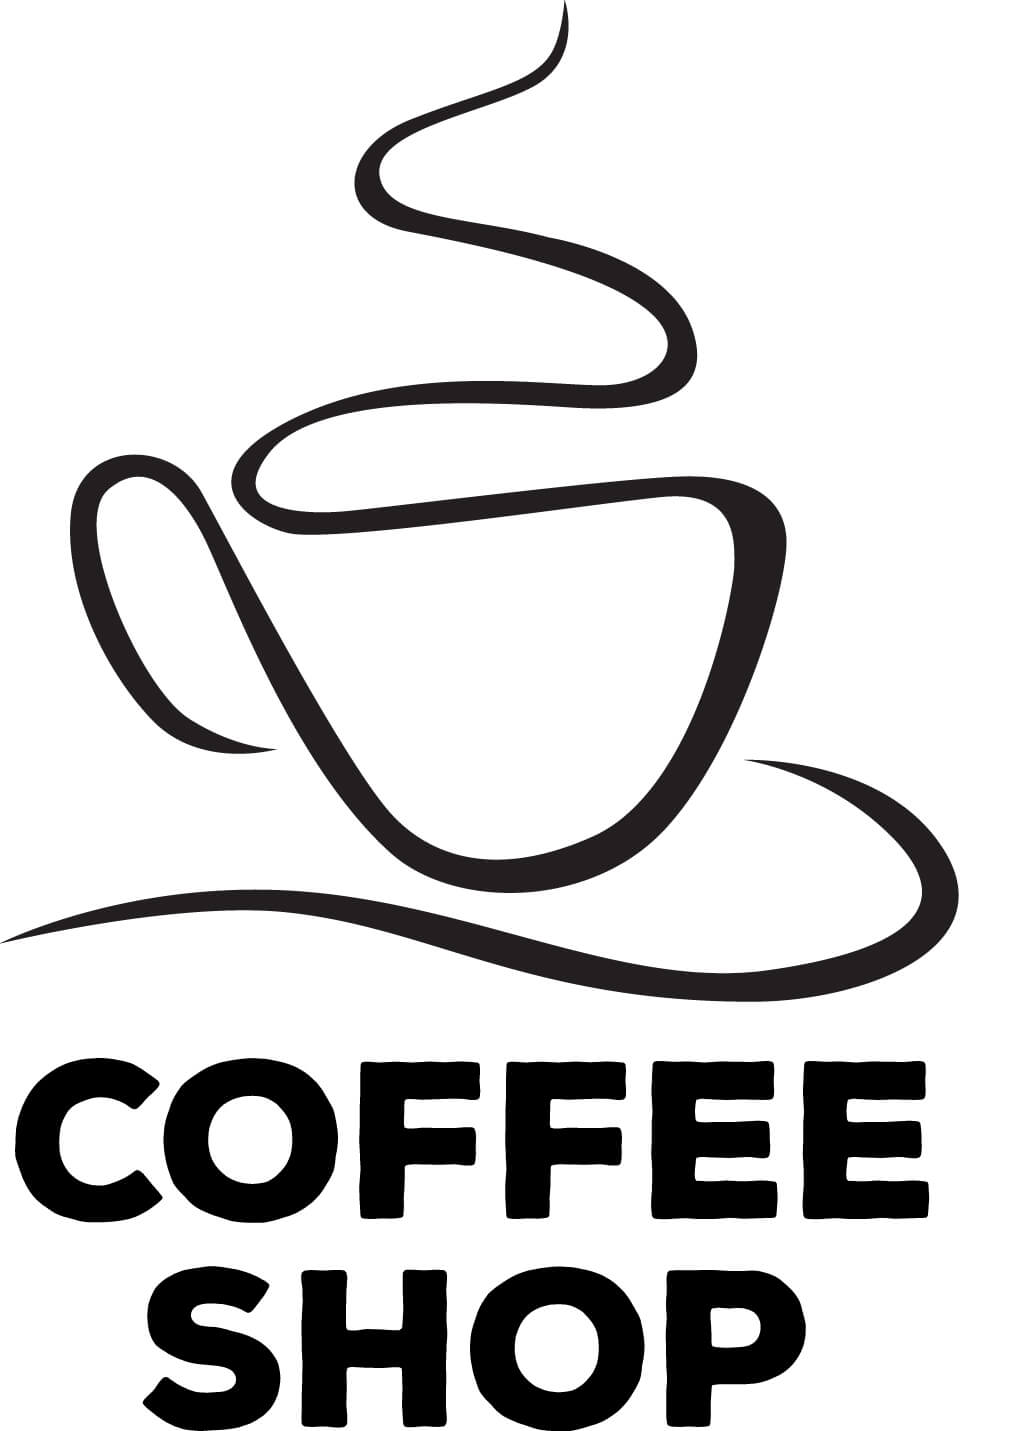 https://www.a1coffee.net/coffee-supplies/coffee-shop-brand-coffee-beans.html